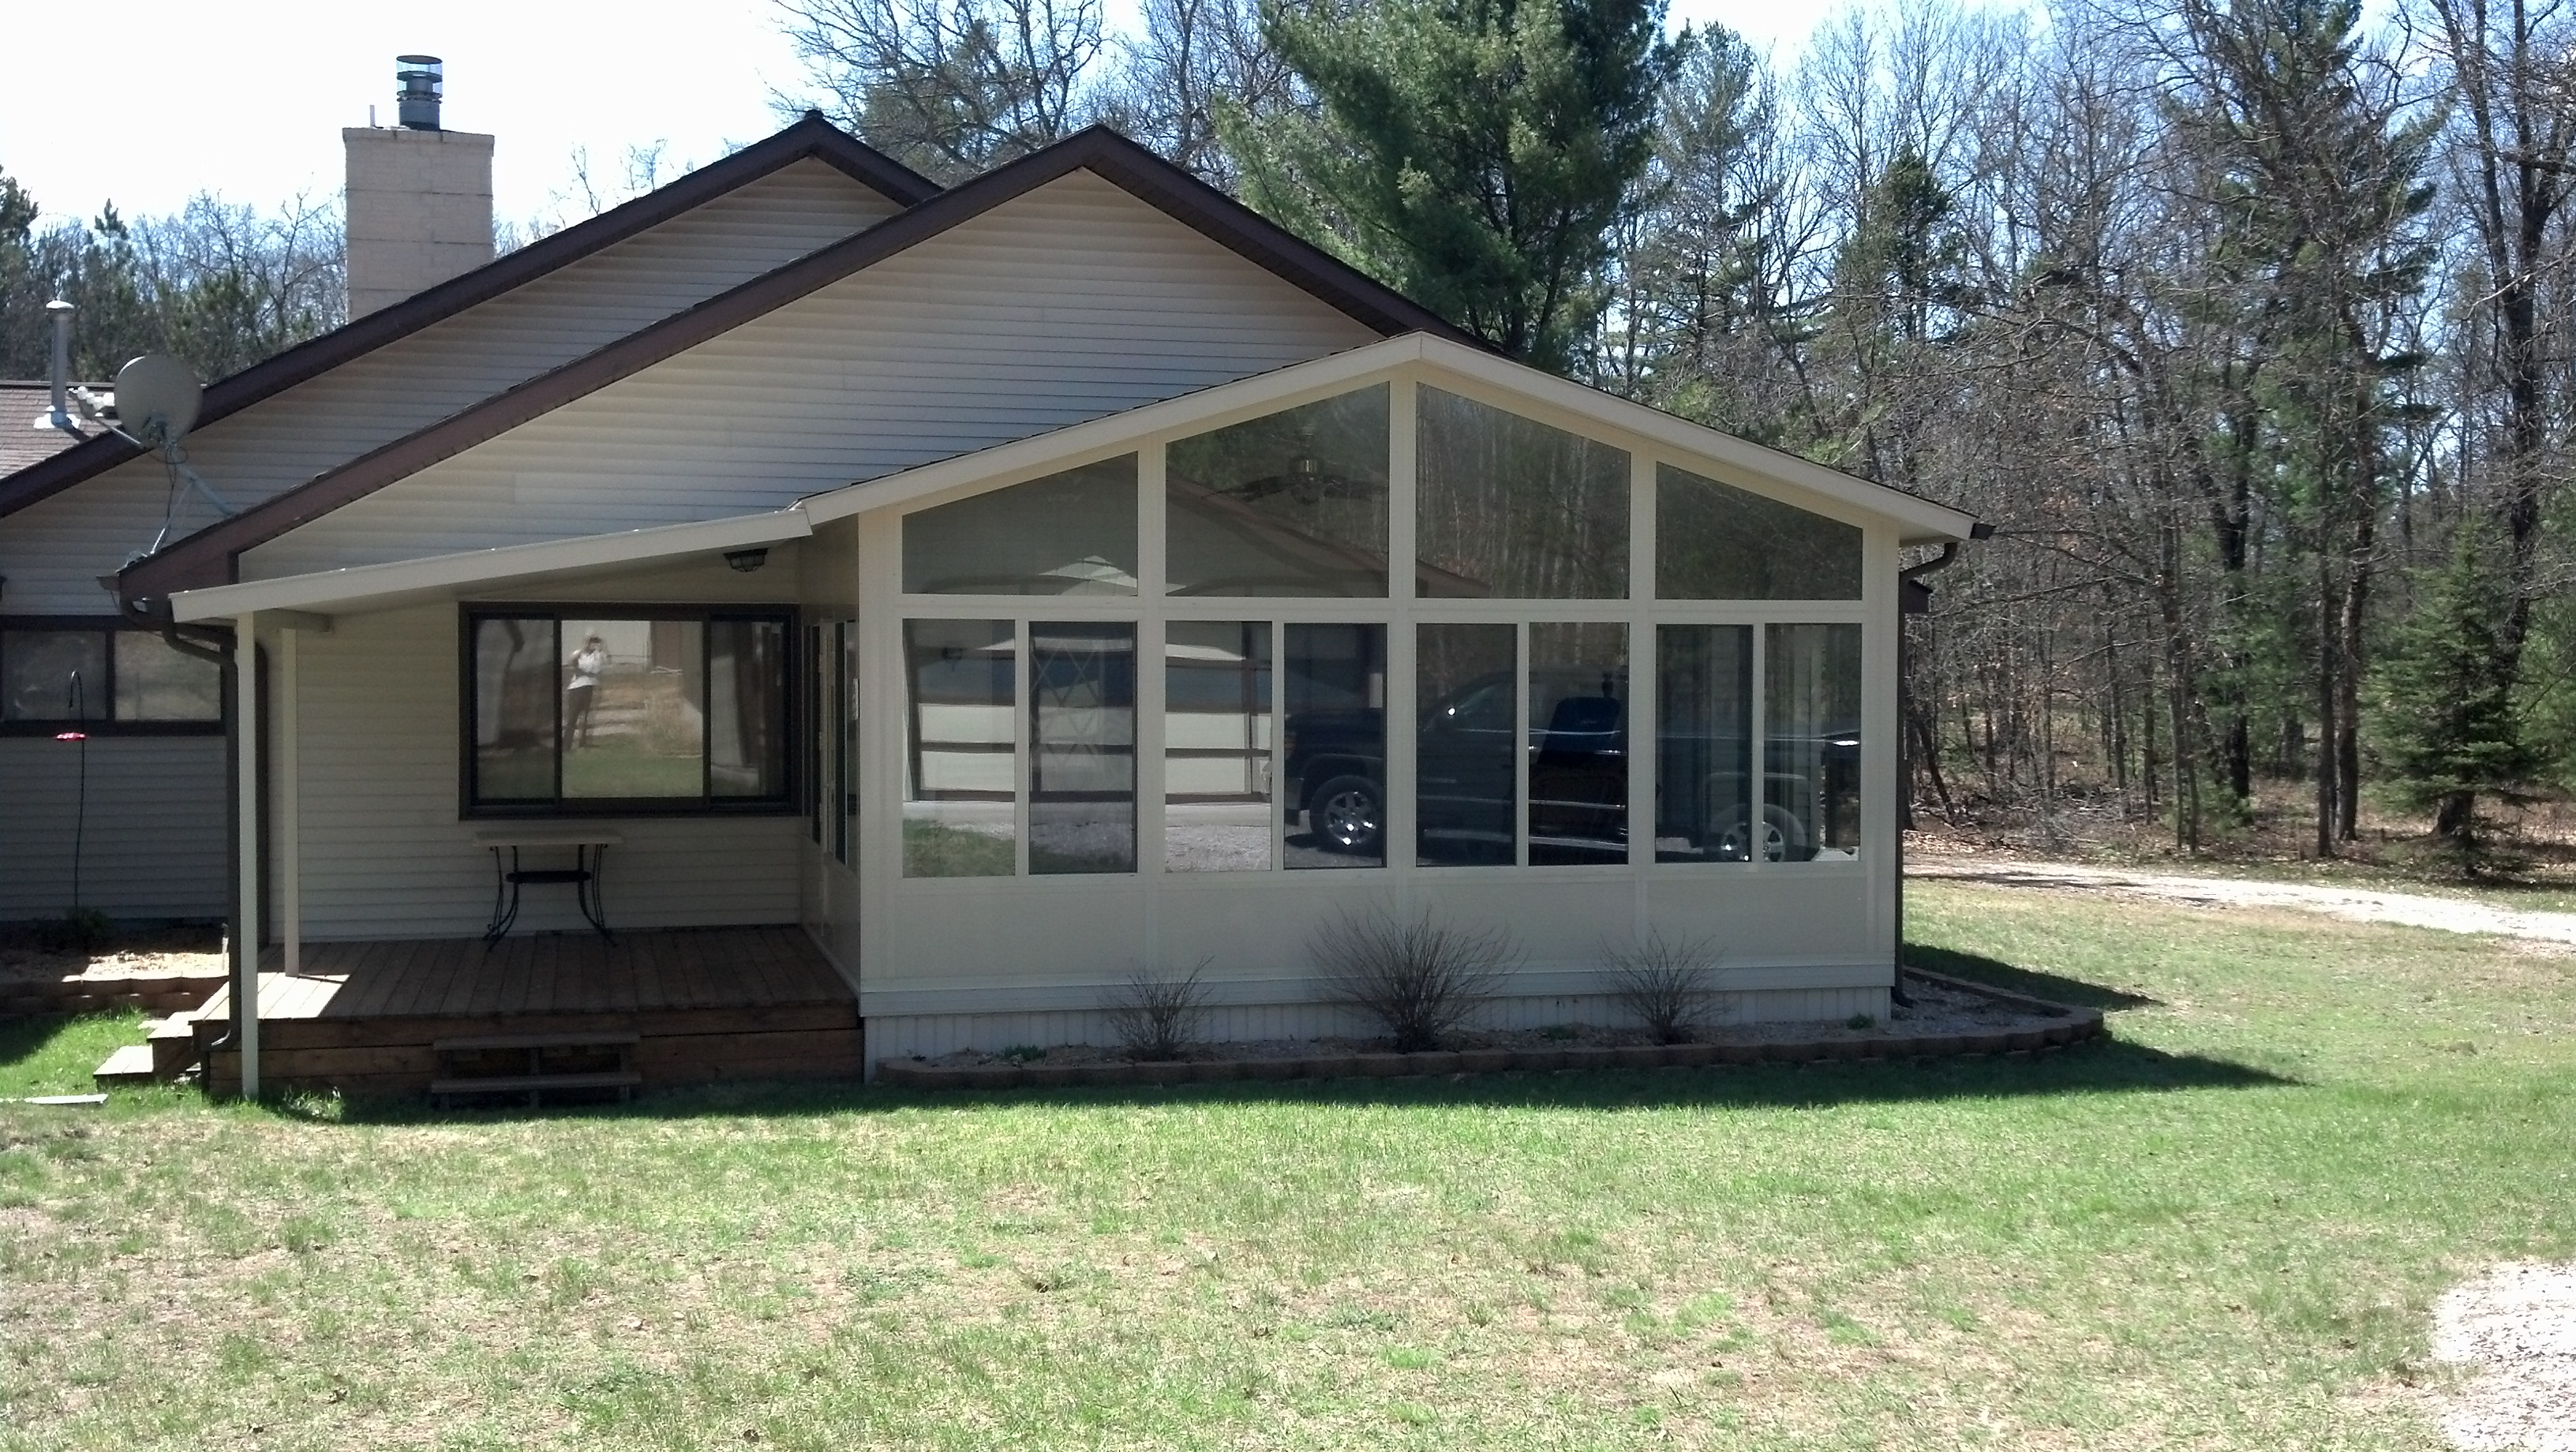 Covered Deck Gable Style Sunroom in Northern Michigan